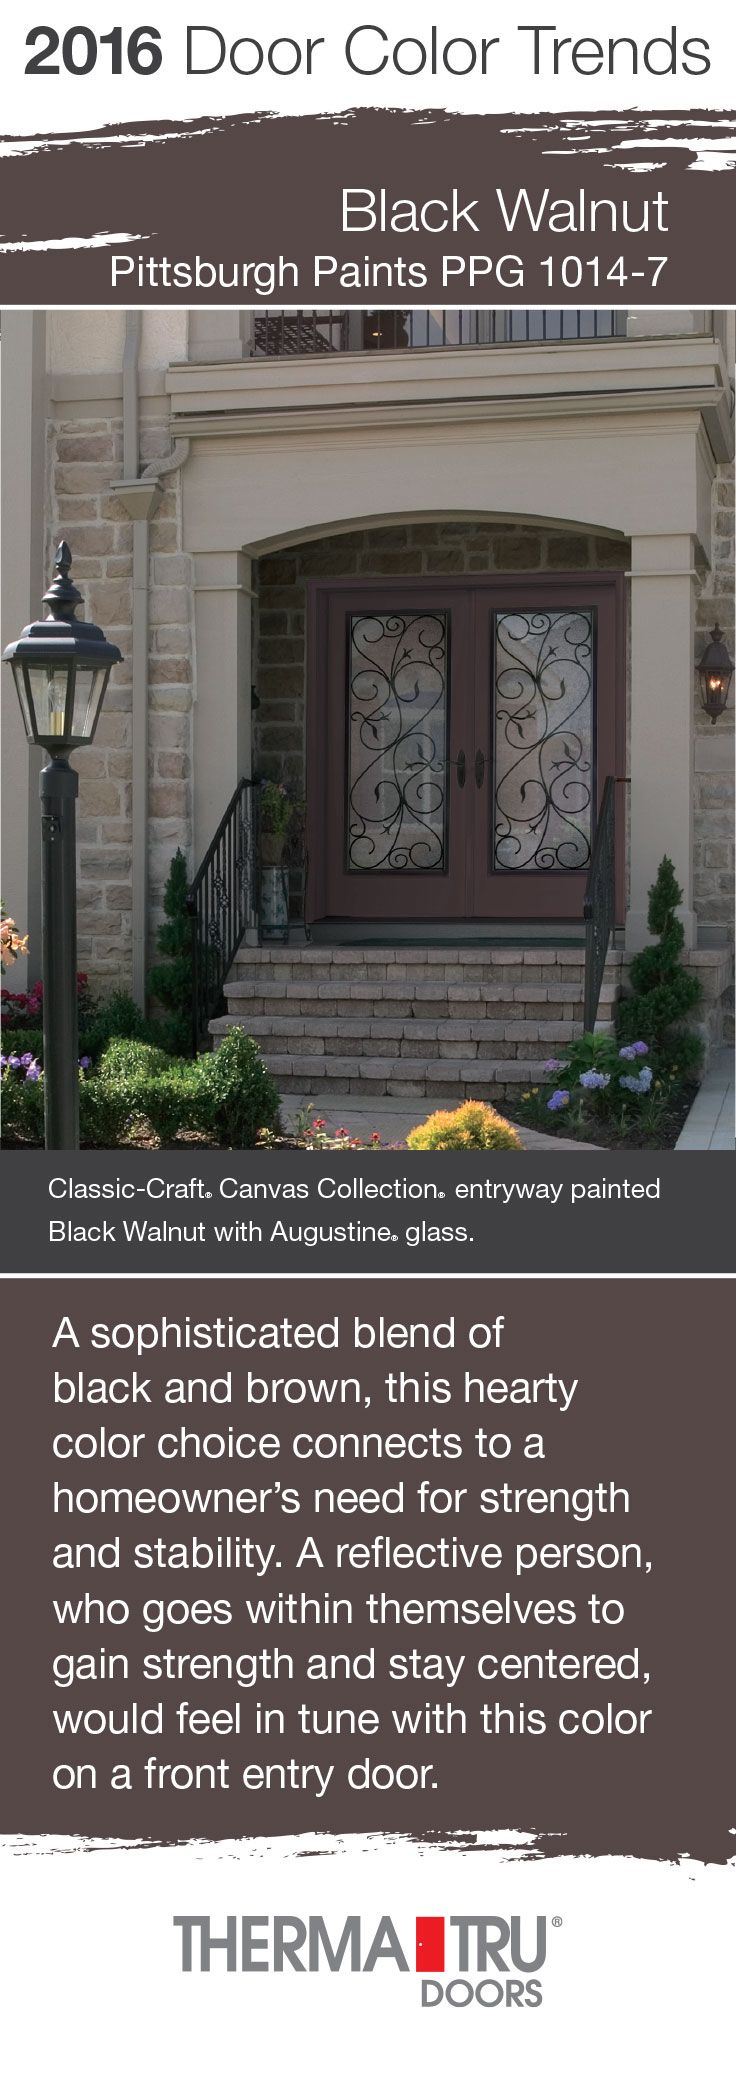 35 best 2016 front door color trends images on pinterest for Trendy front door colors